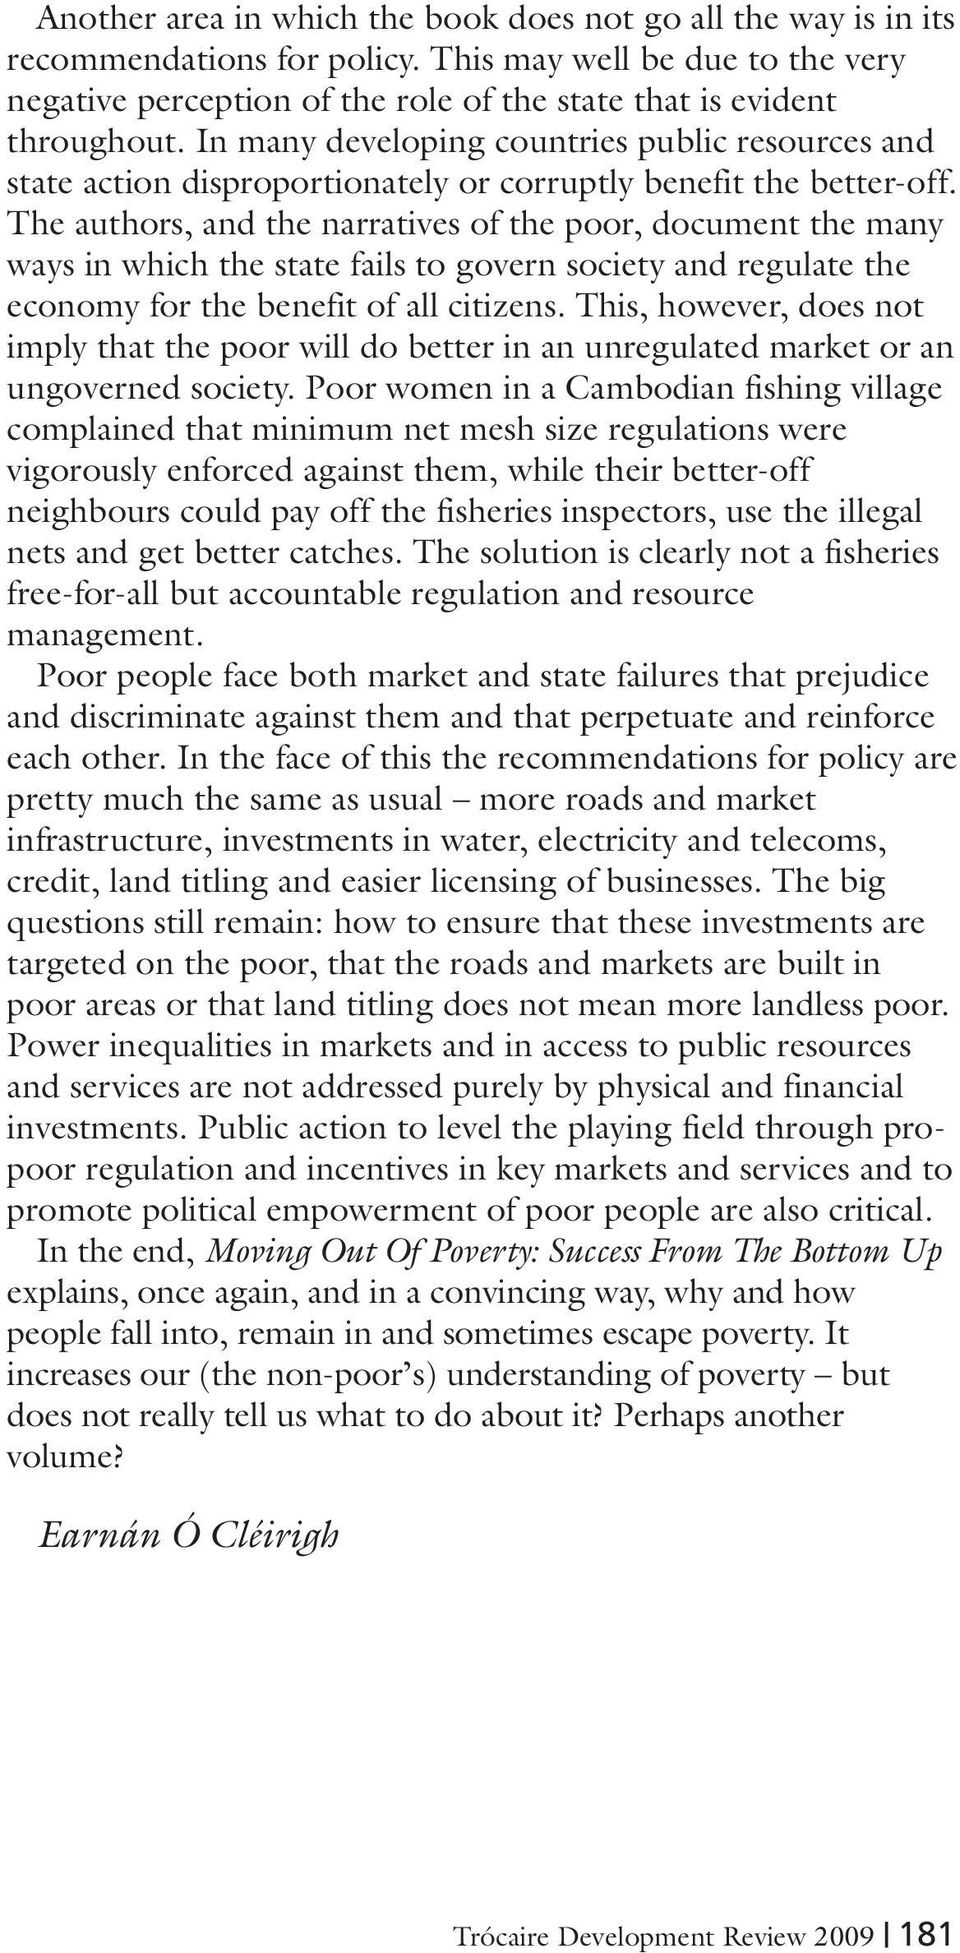 The authors, and the narratives of the poor, document the many ways in which the state fails to govern society and regulate the economy for the benefit of all citizens.